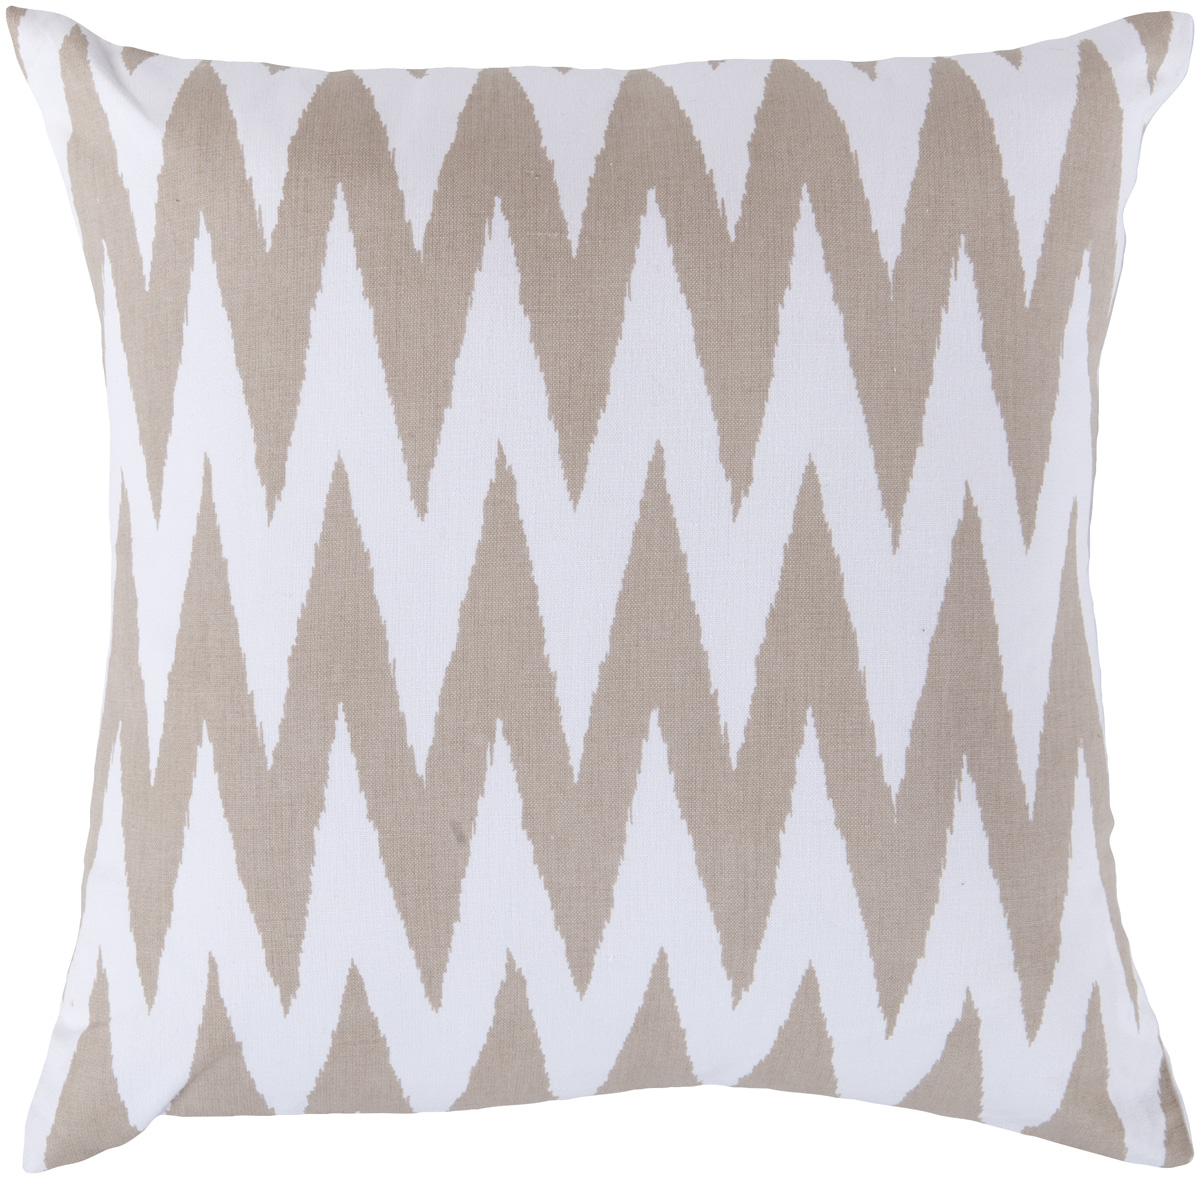 Surya Surya Pillows Area Rugs - LG527 Contemporary Safari Tan/White Chevron Zig Zag Stripes Rug